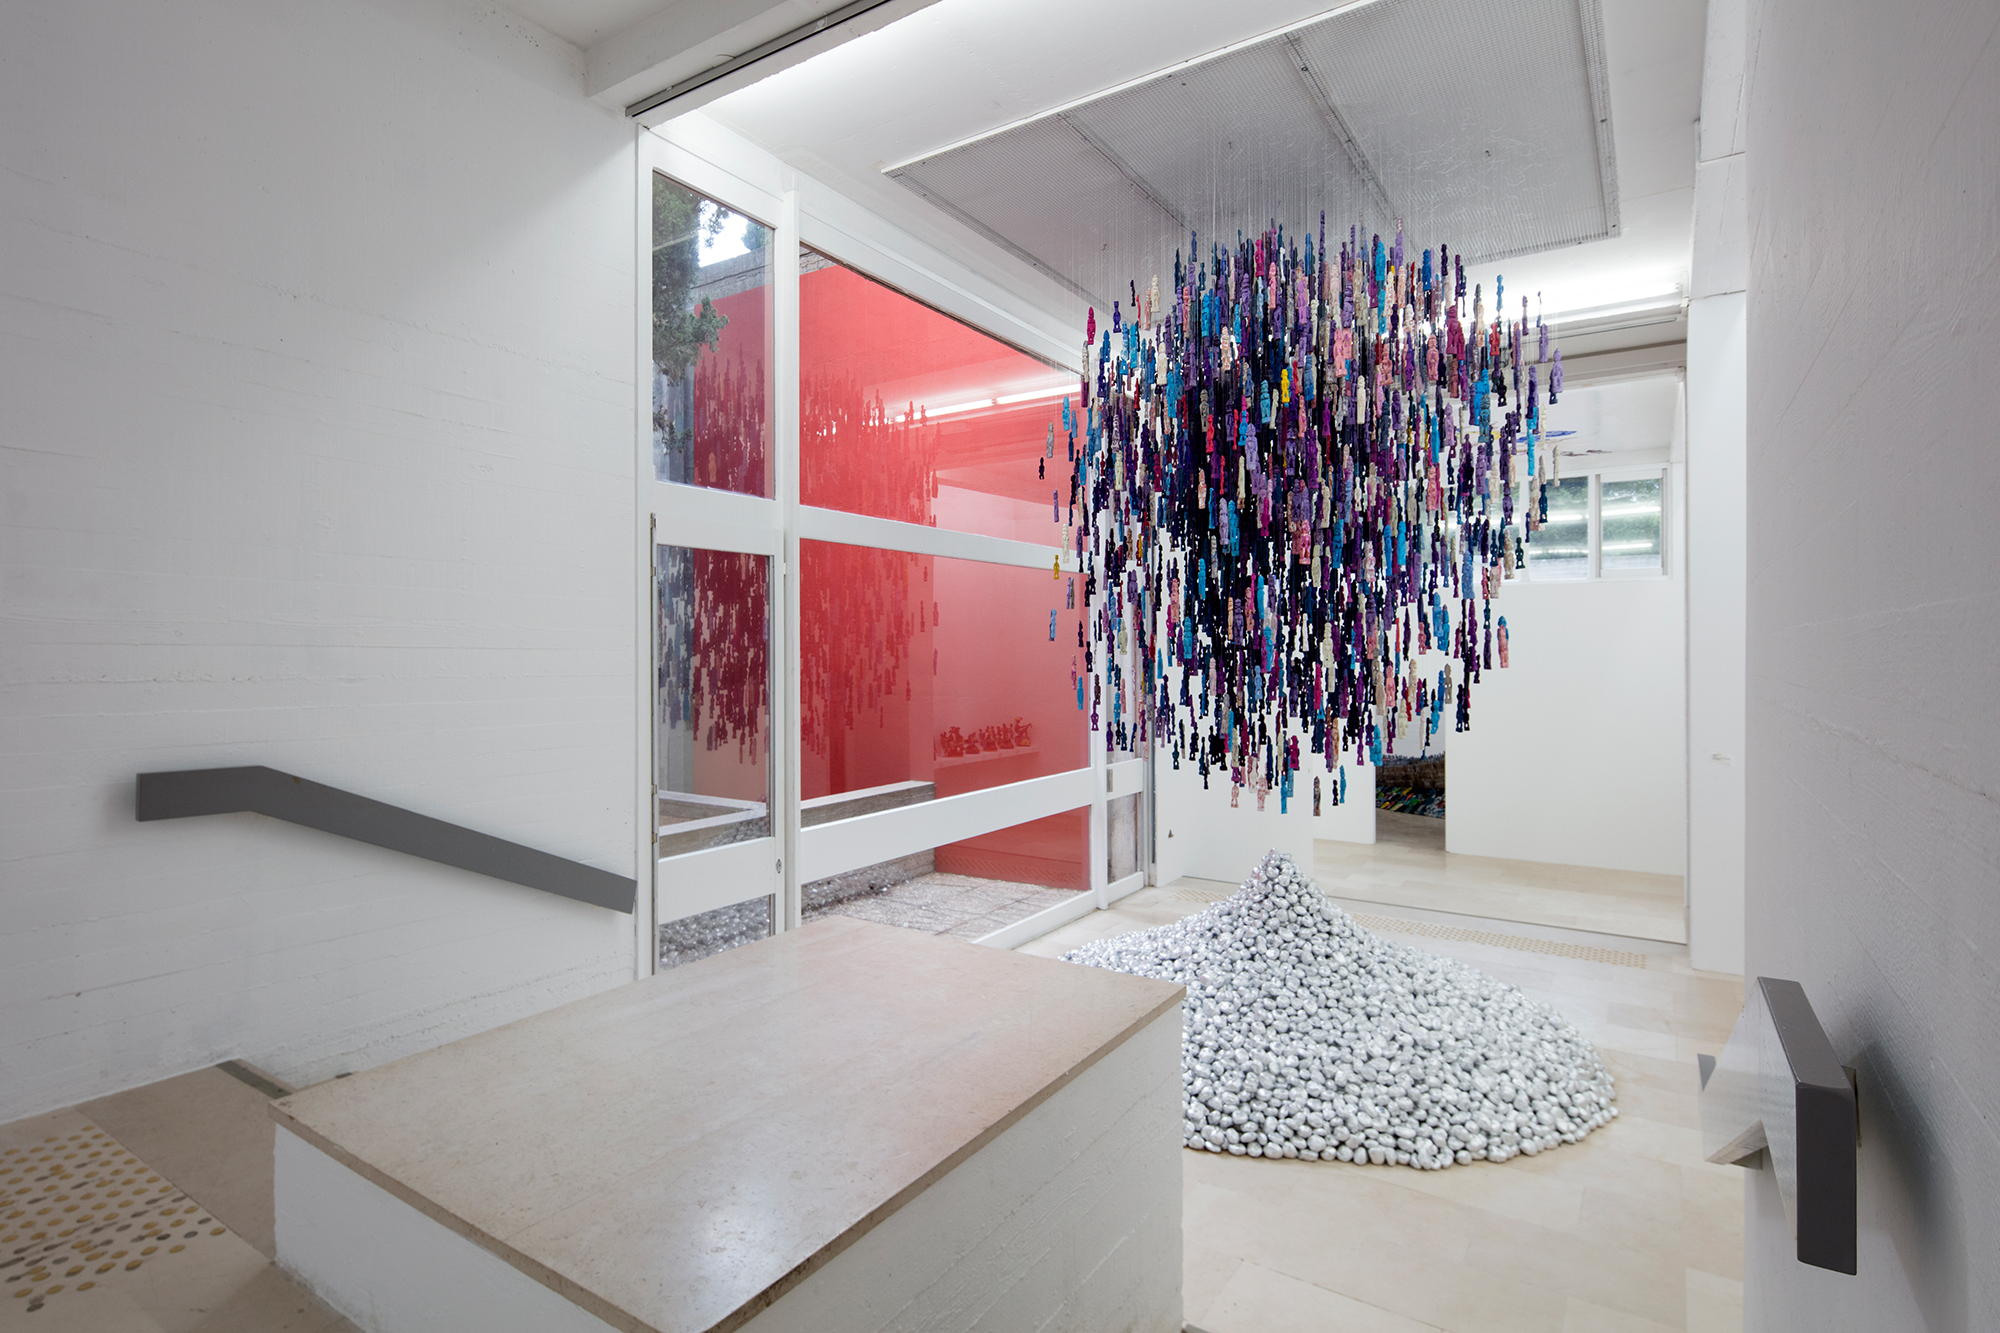 Dominique Zinkpé, Globe, 2017, Production Villa Arson, le Centre Arts et Culture de Cotonou, Galerie Vallois, Paris, crédit Loïc Thébaud / Villa Arson